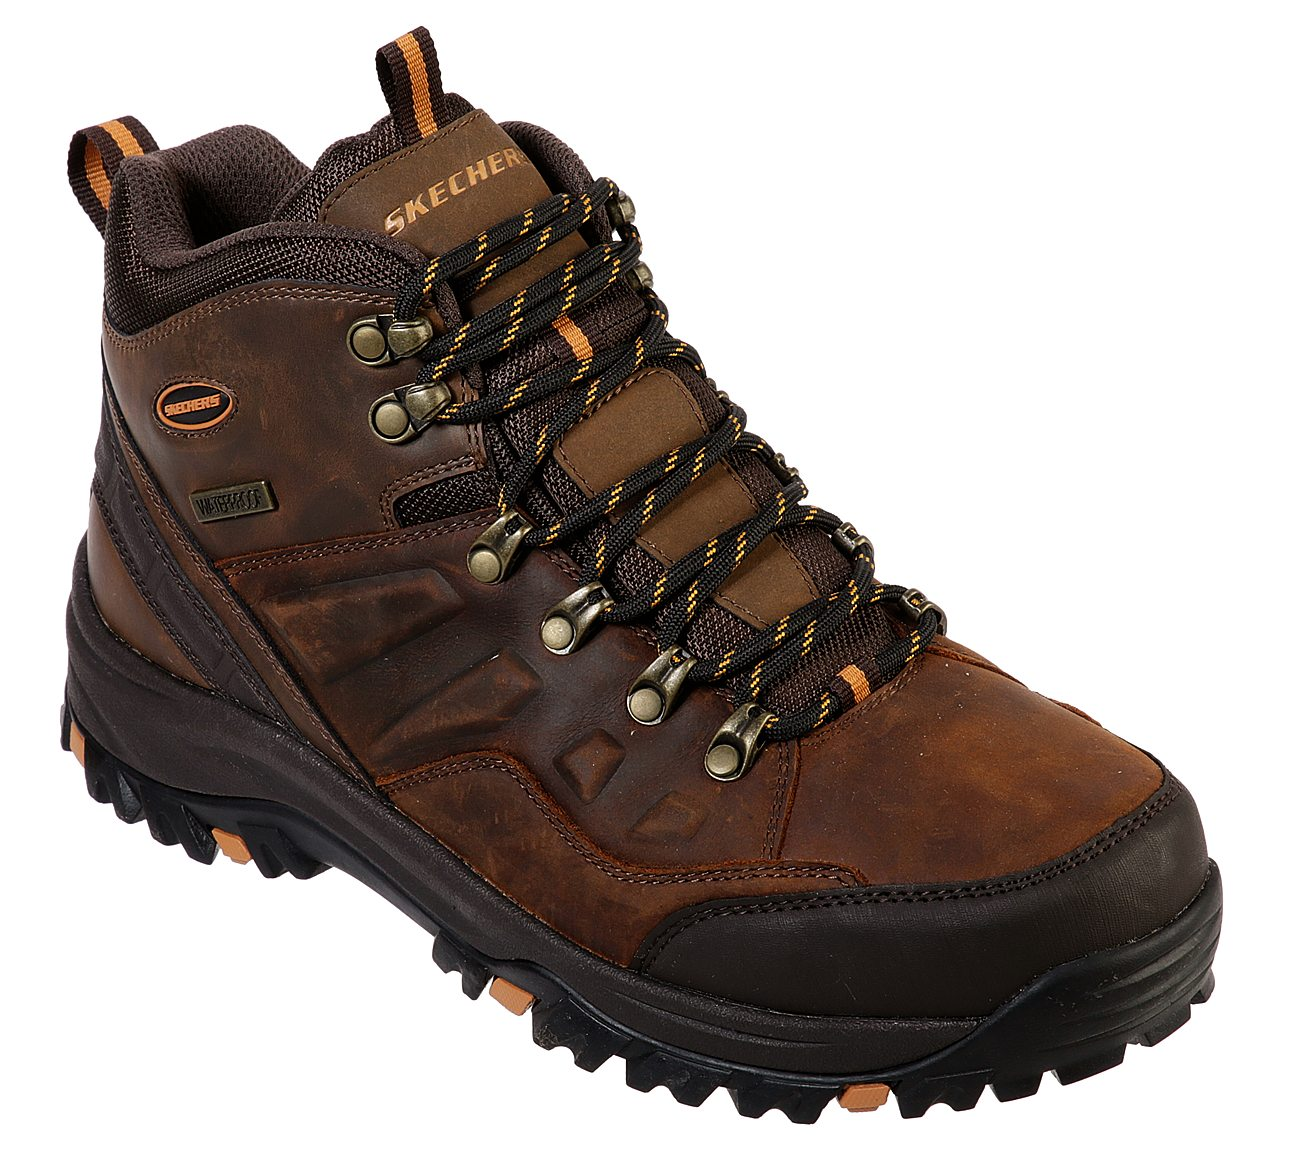 skechers hiking boots Sale,up to 51